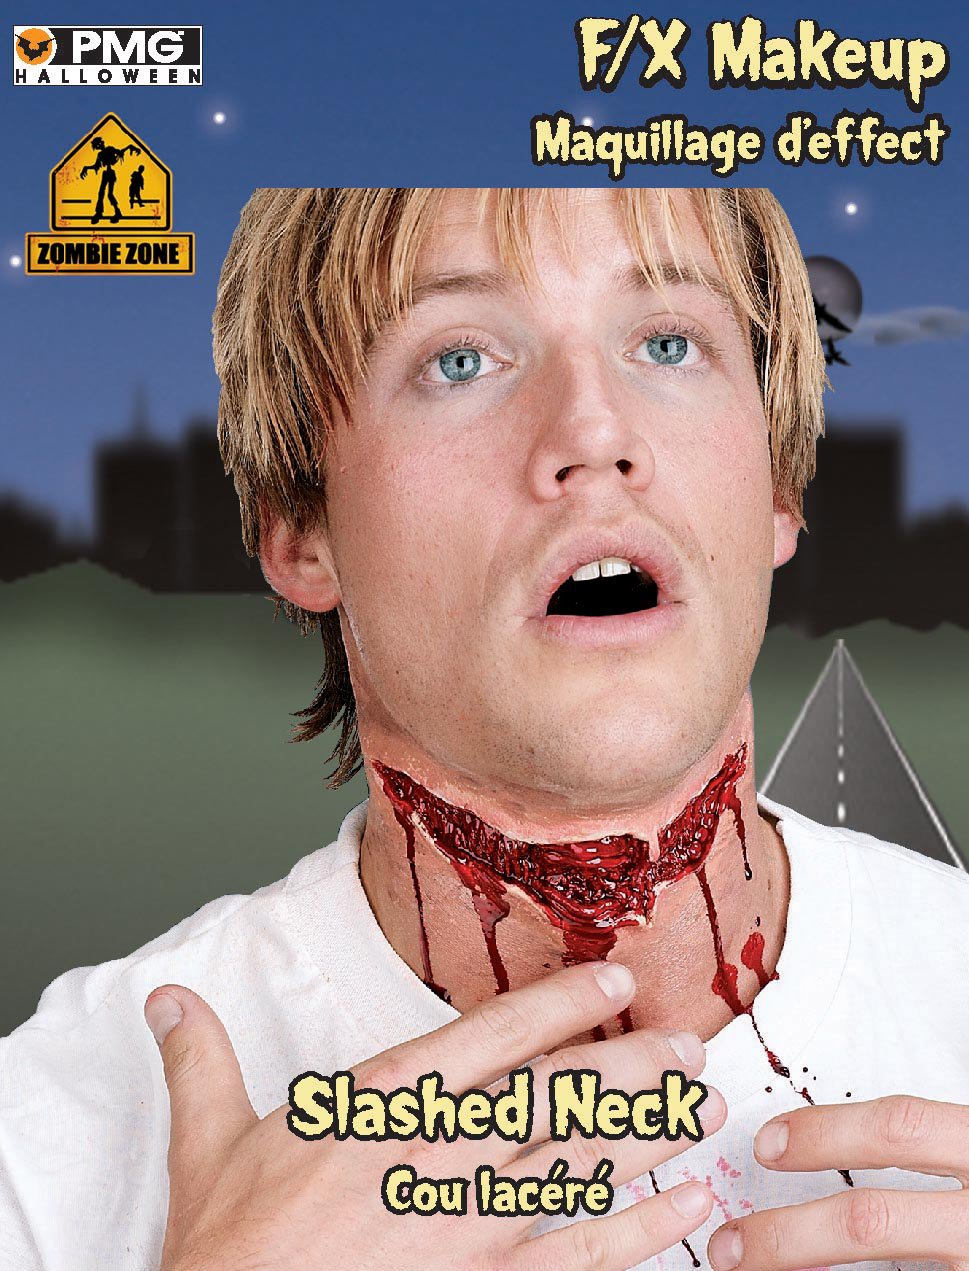 Zombie Zone Slashed Neck Appliance